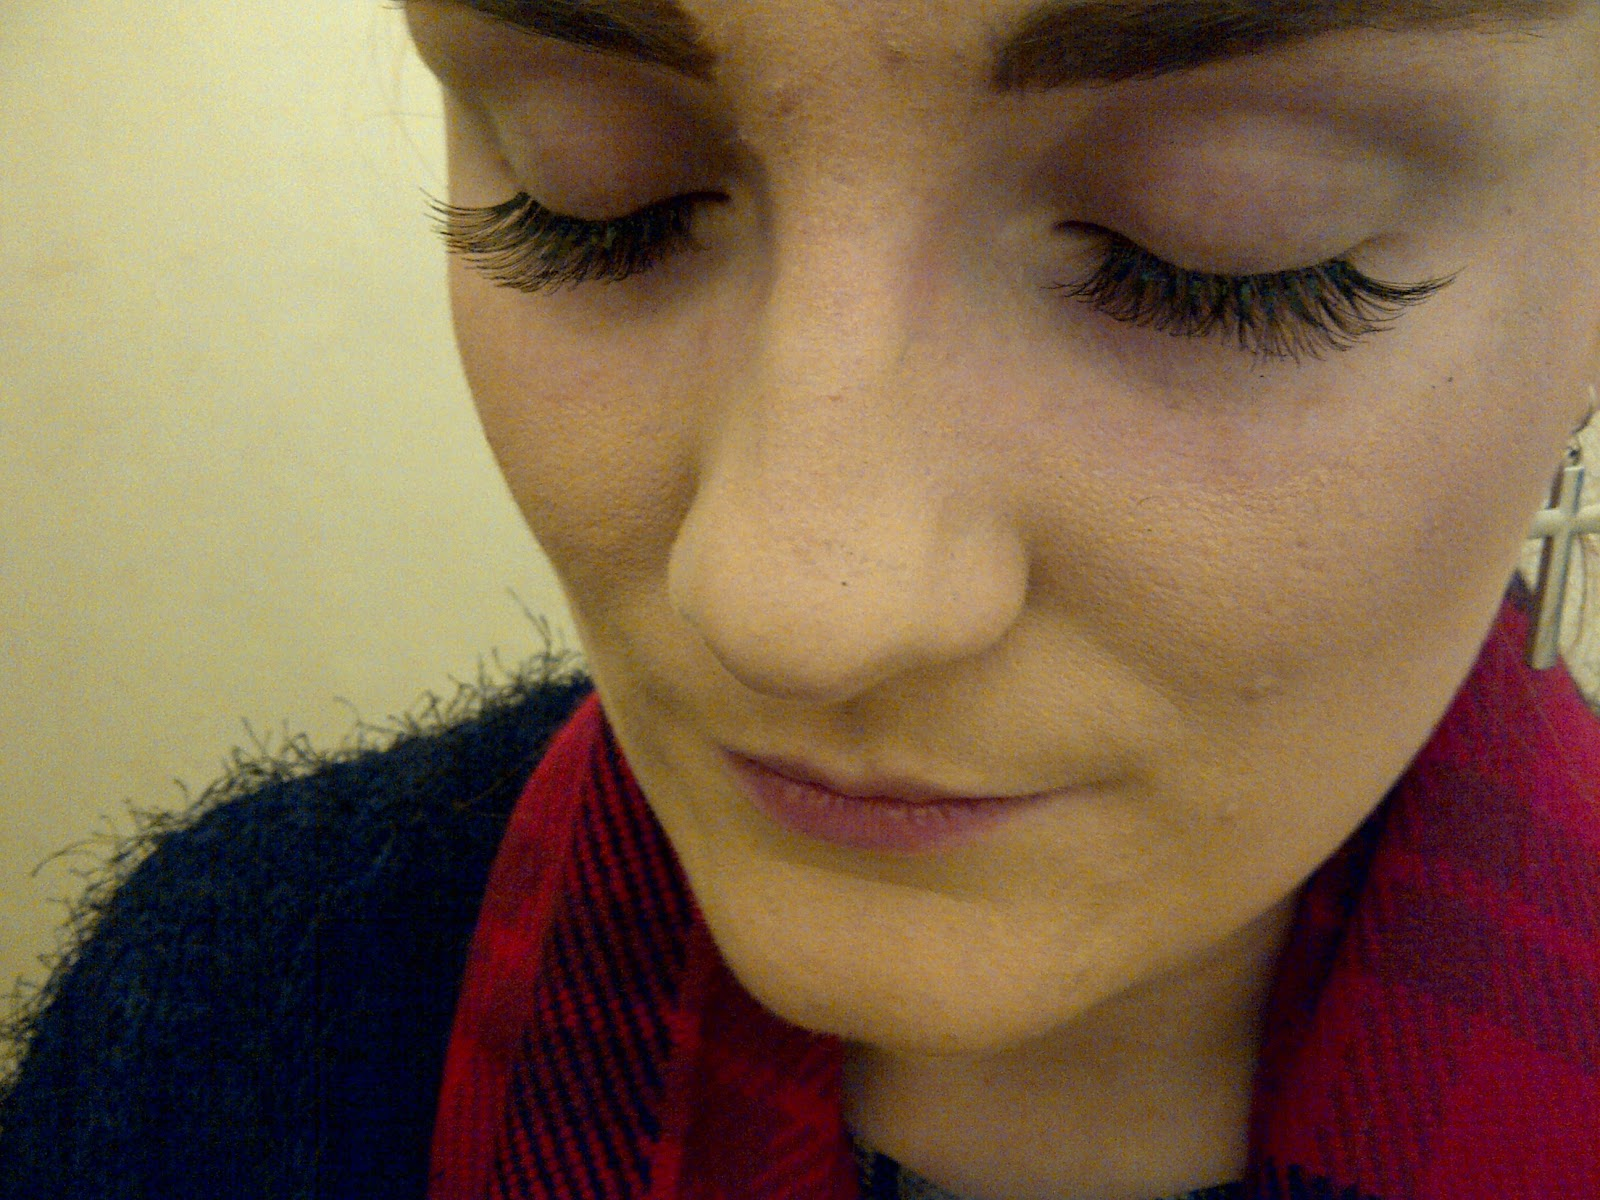 lash extensions falling off straight after application